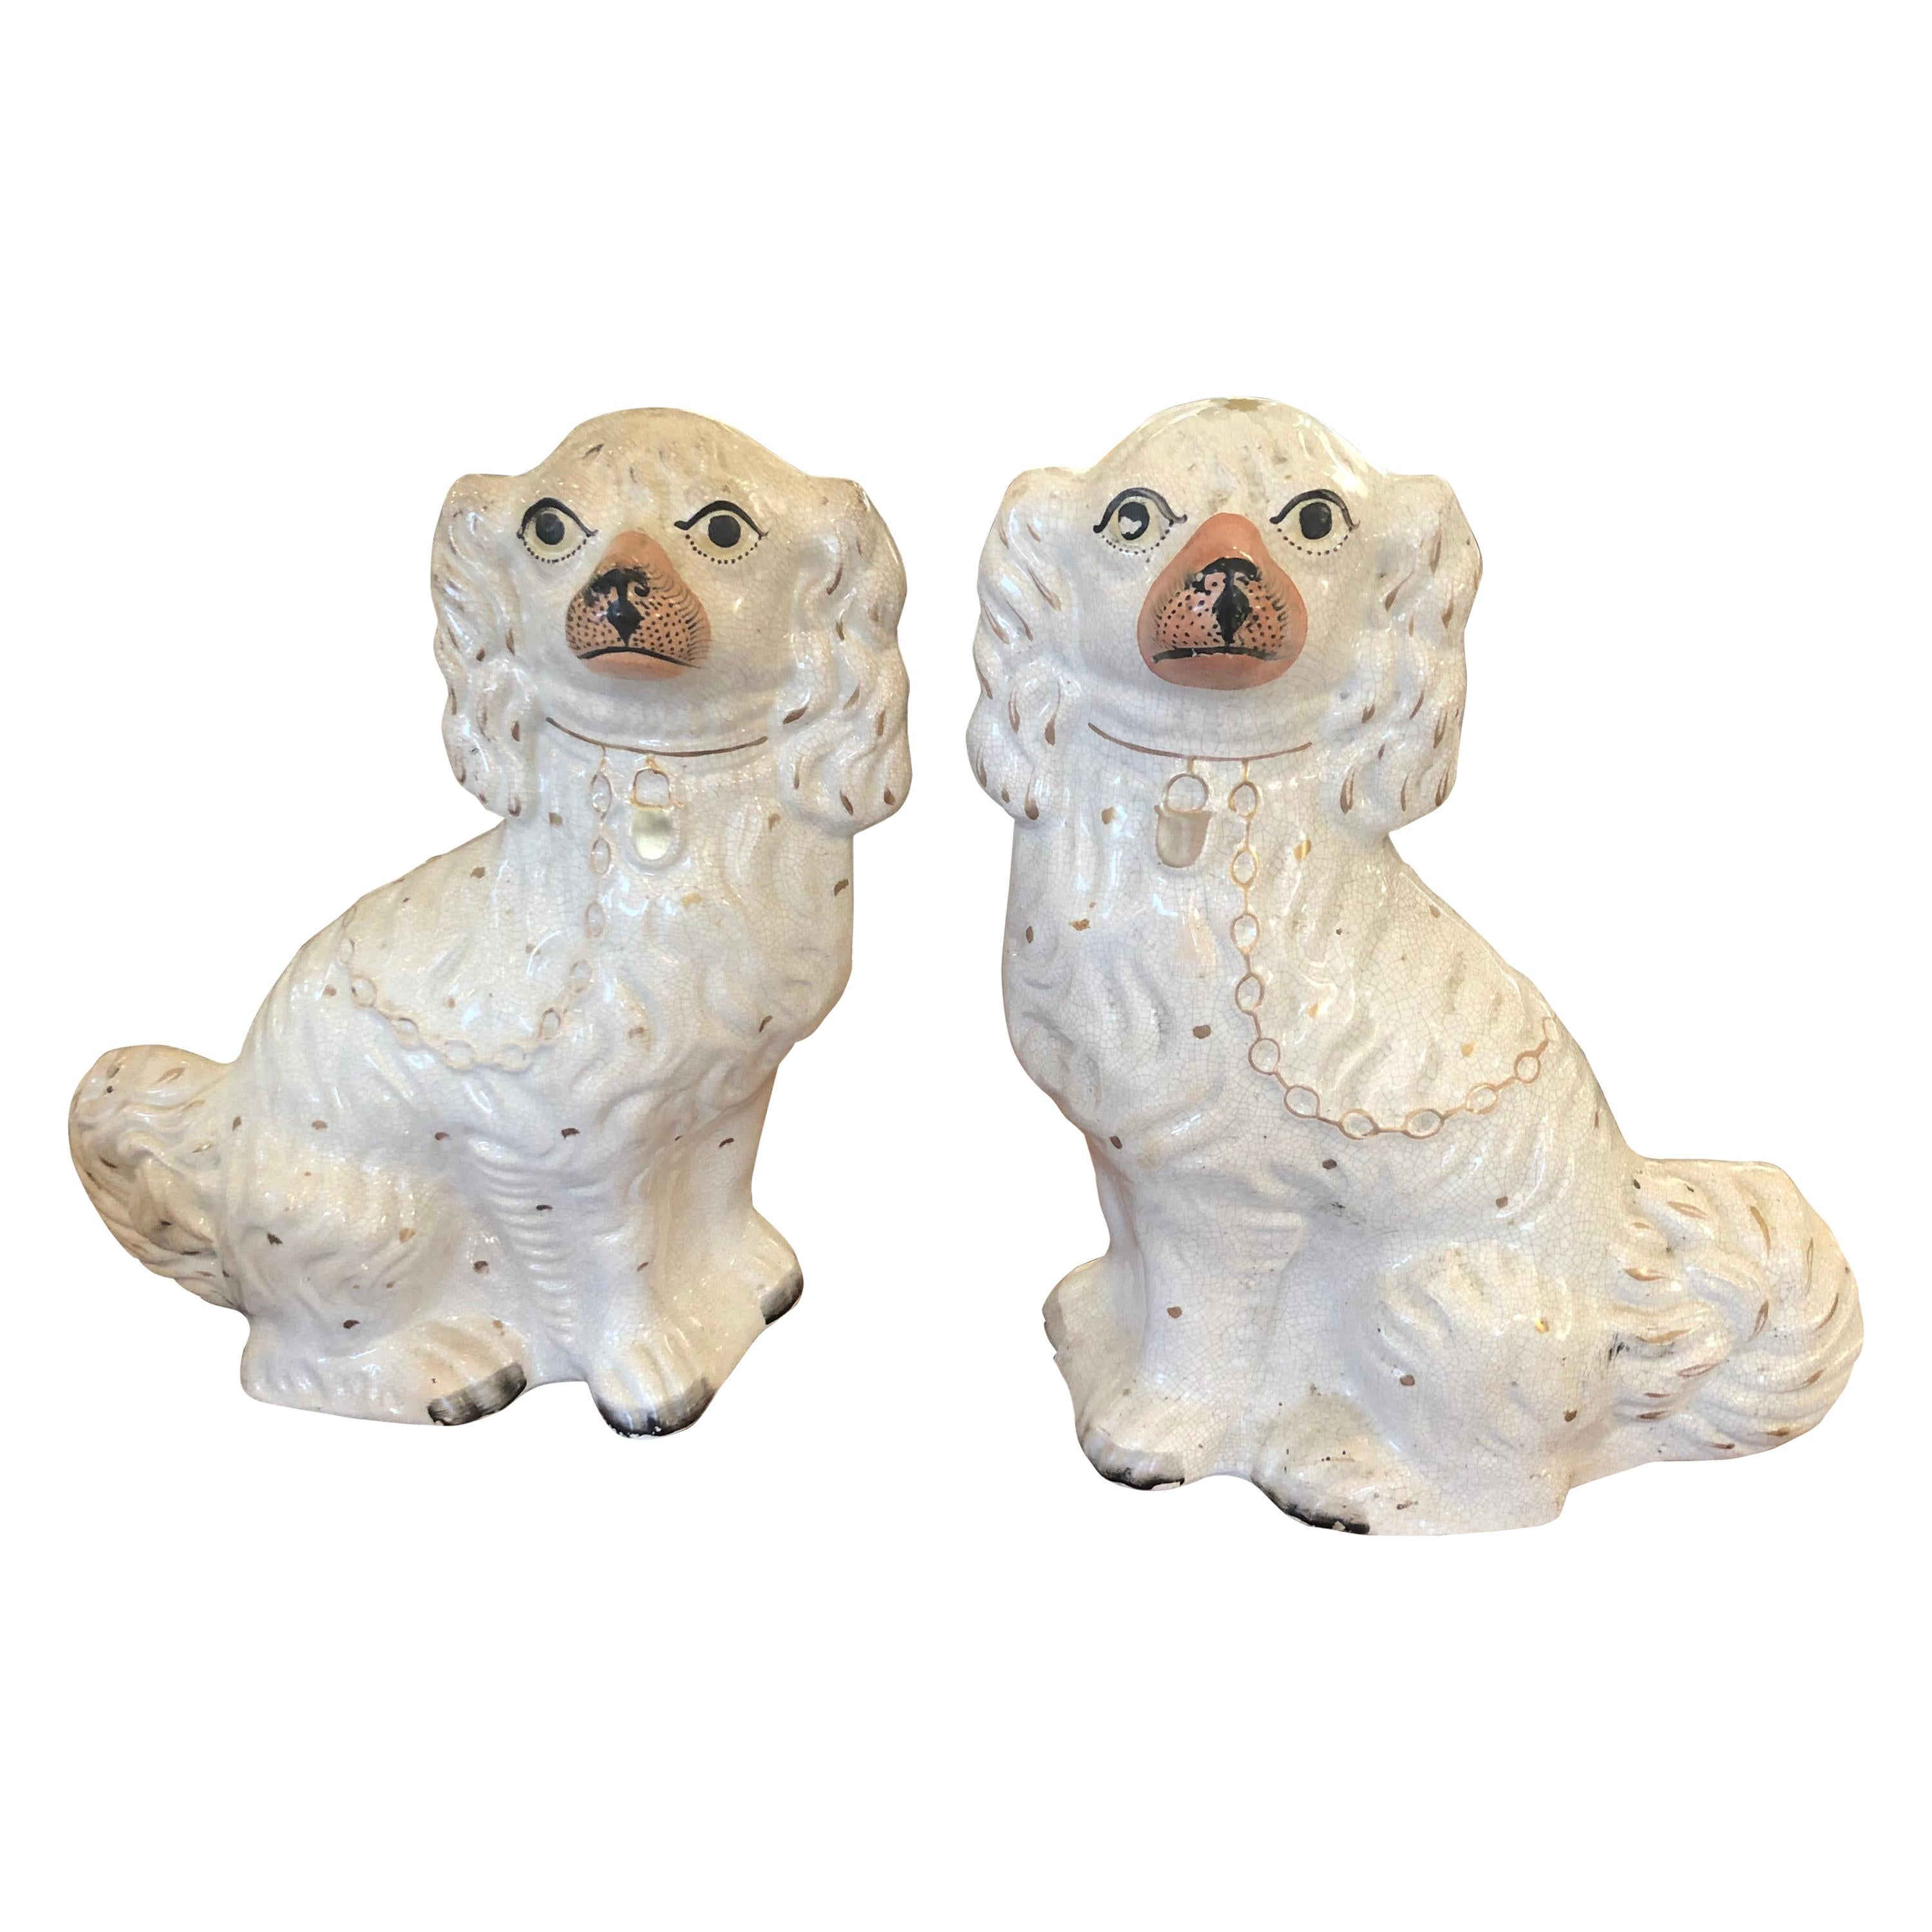 Wonderful Pair Large Staffordshire Porcelain Off White and Terracotta Spaniels